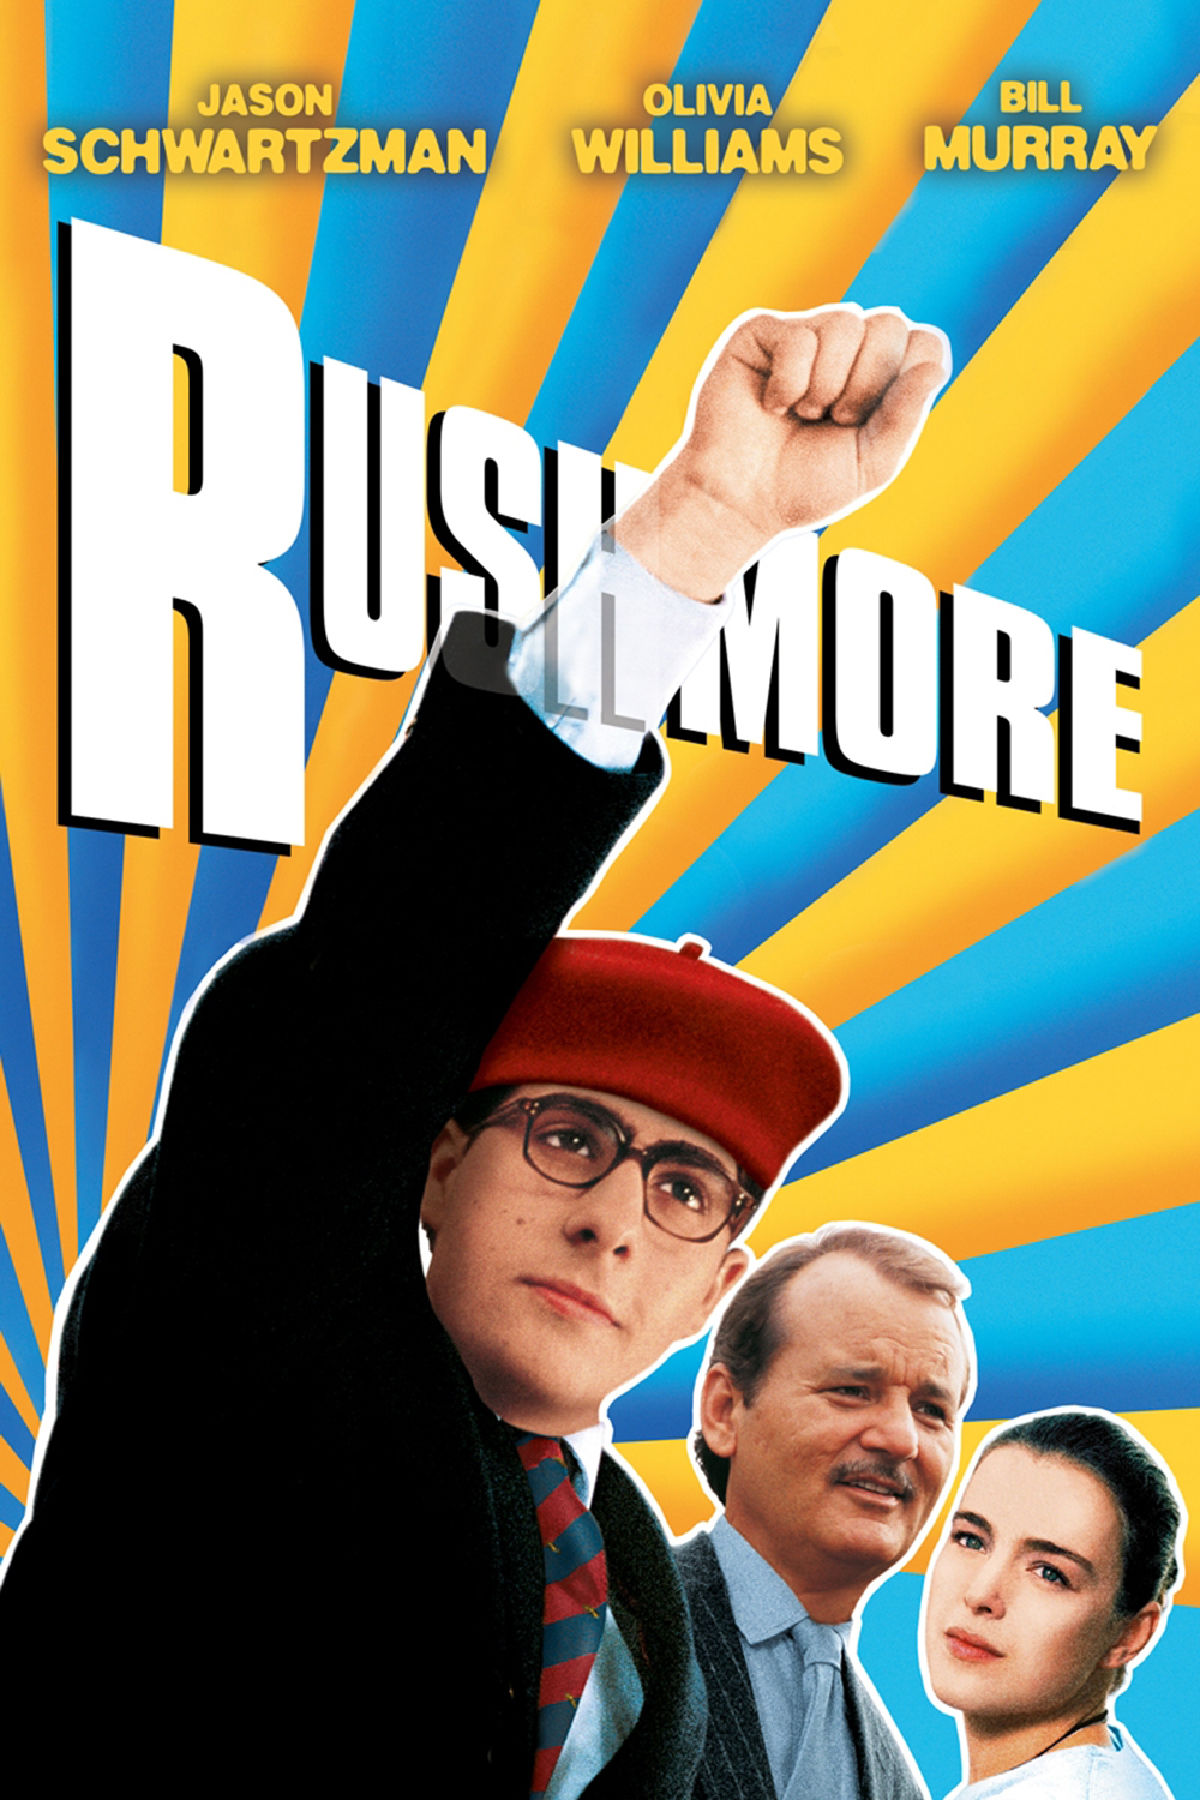 'Rushmore' movie poster